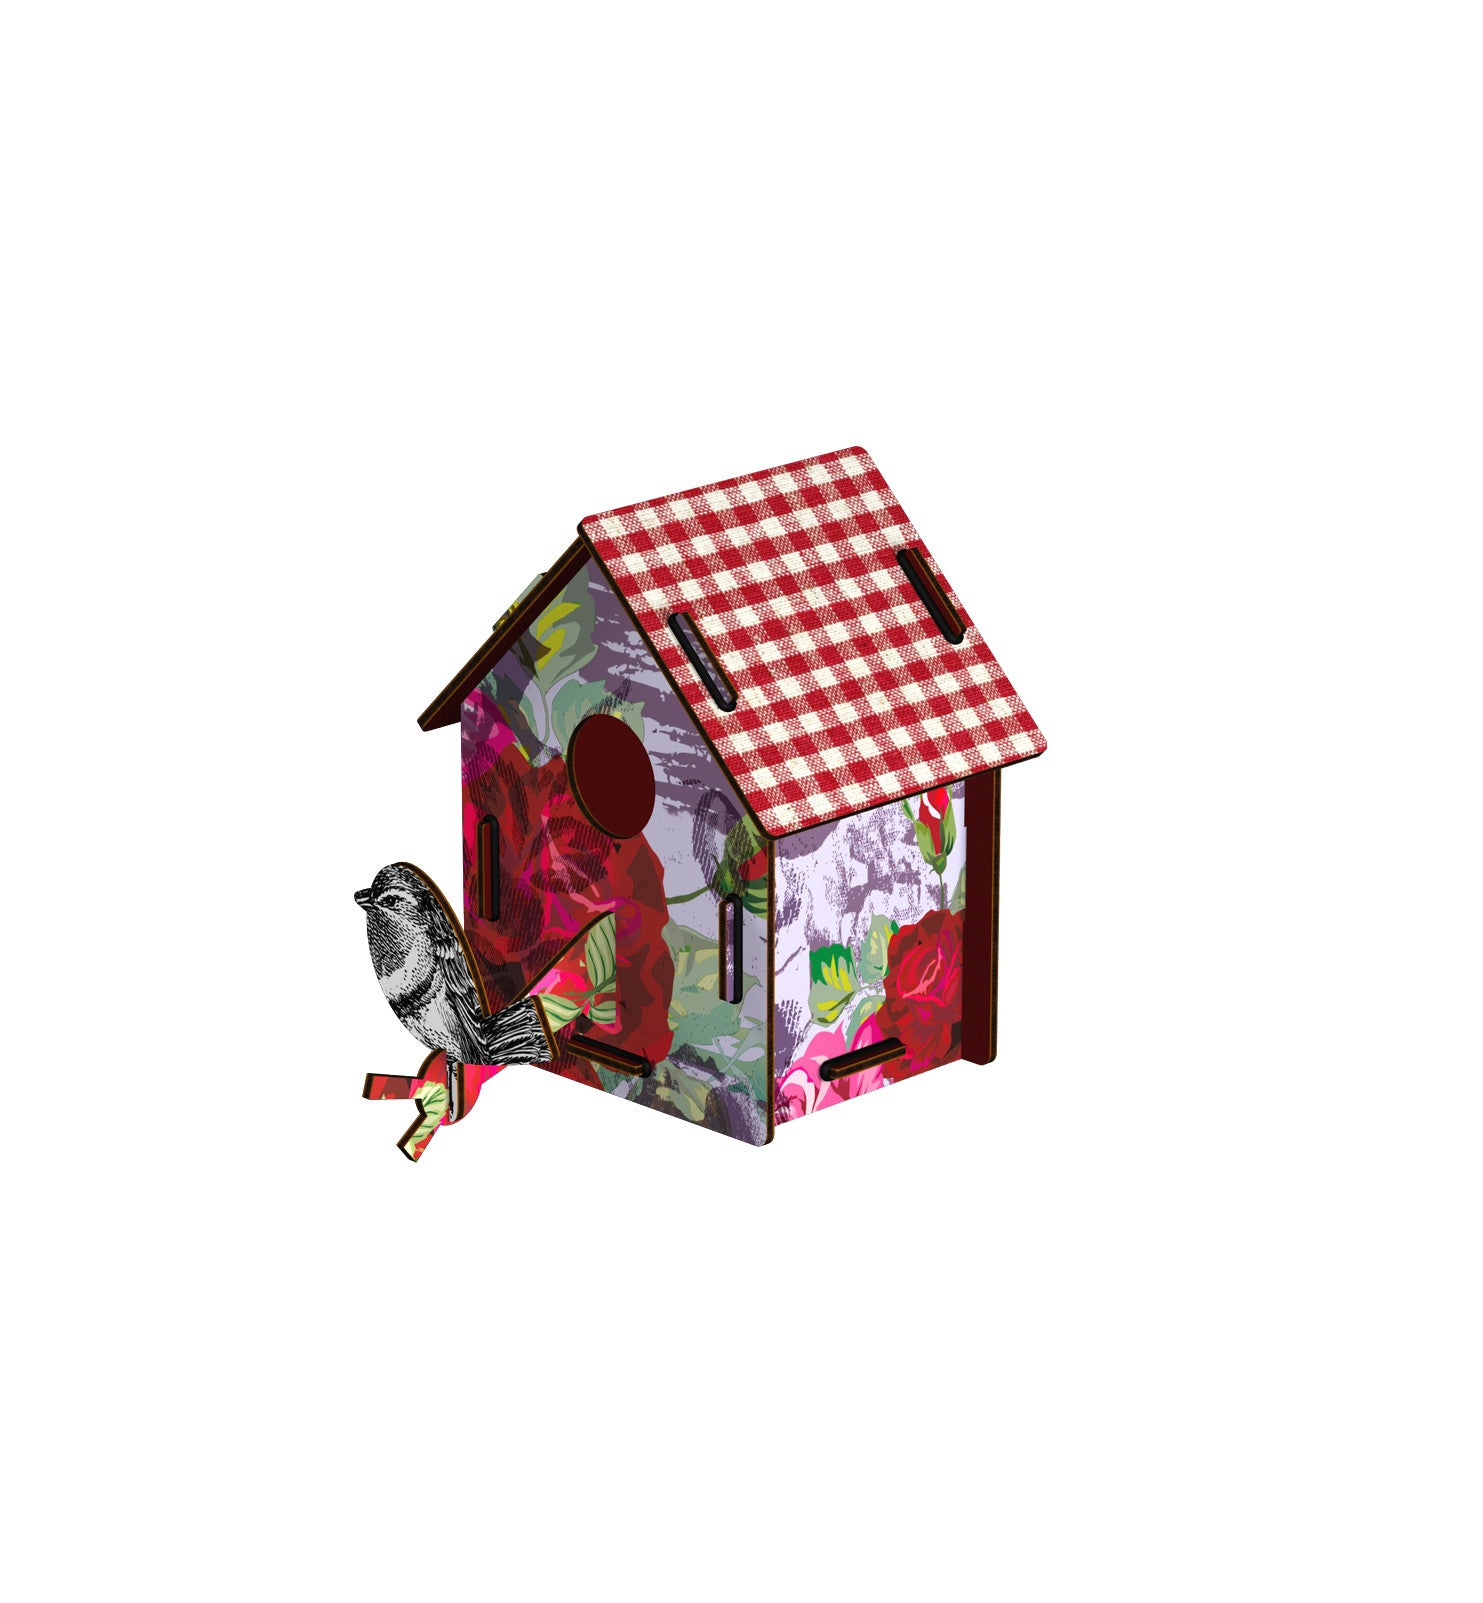 Bird House Small - Enjoy The Crumbs, HOME DECOR, MIHO UNEXPECTED, - Fabrica